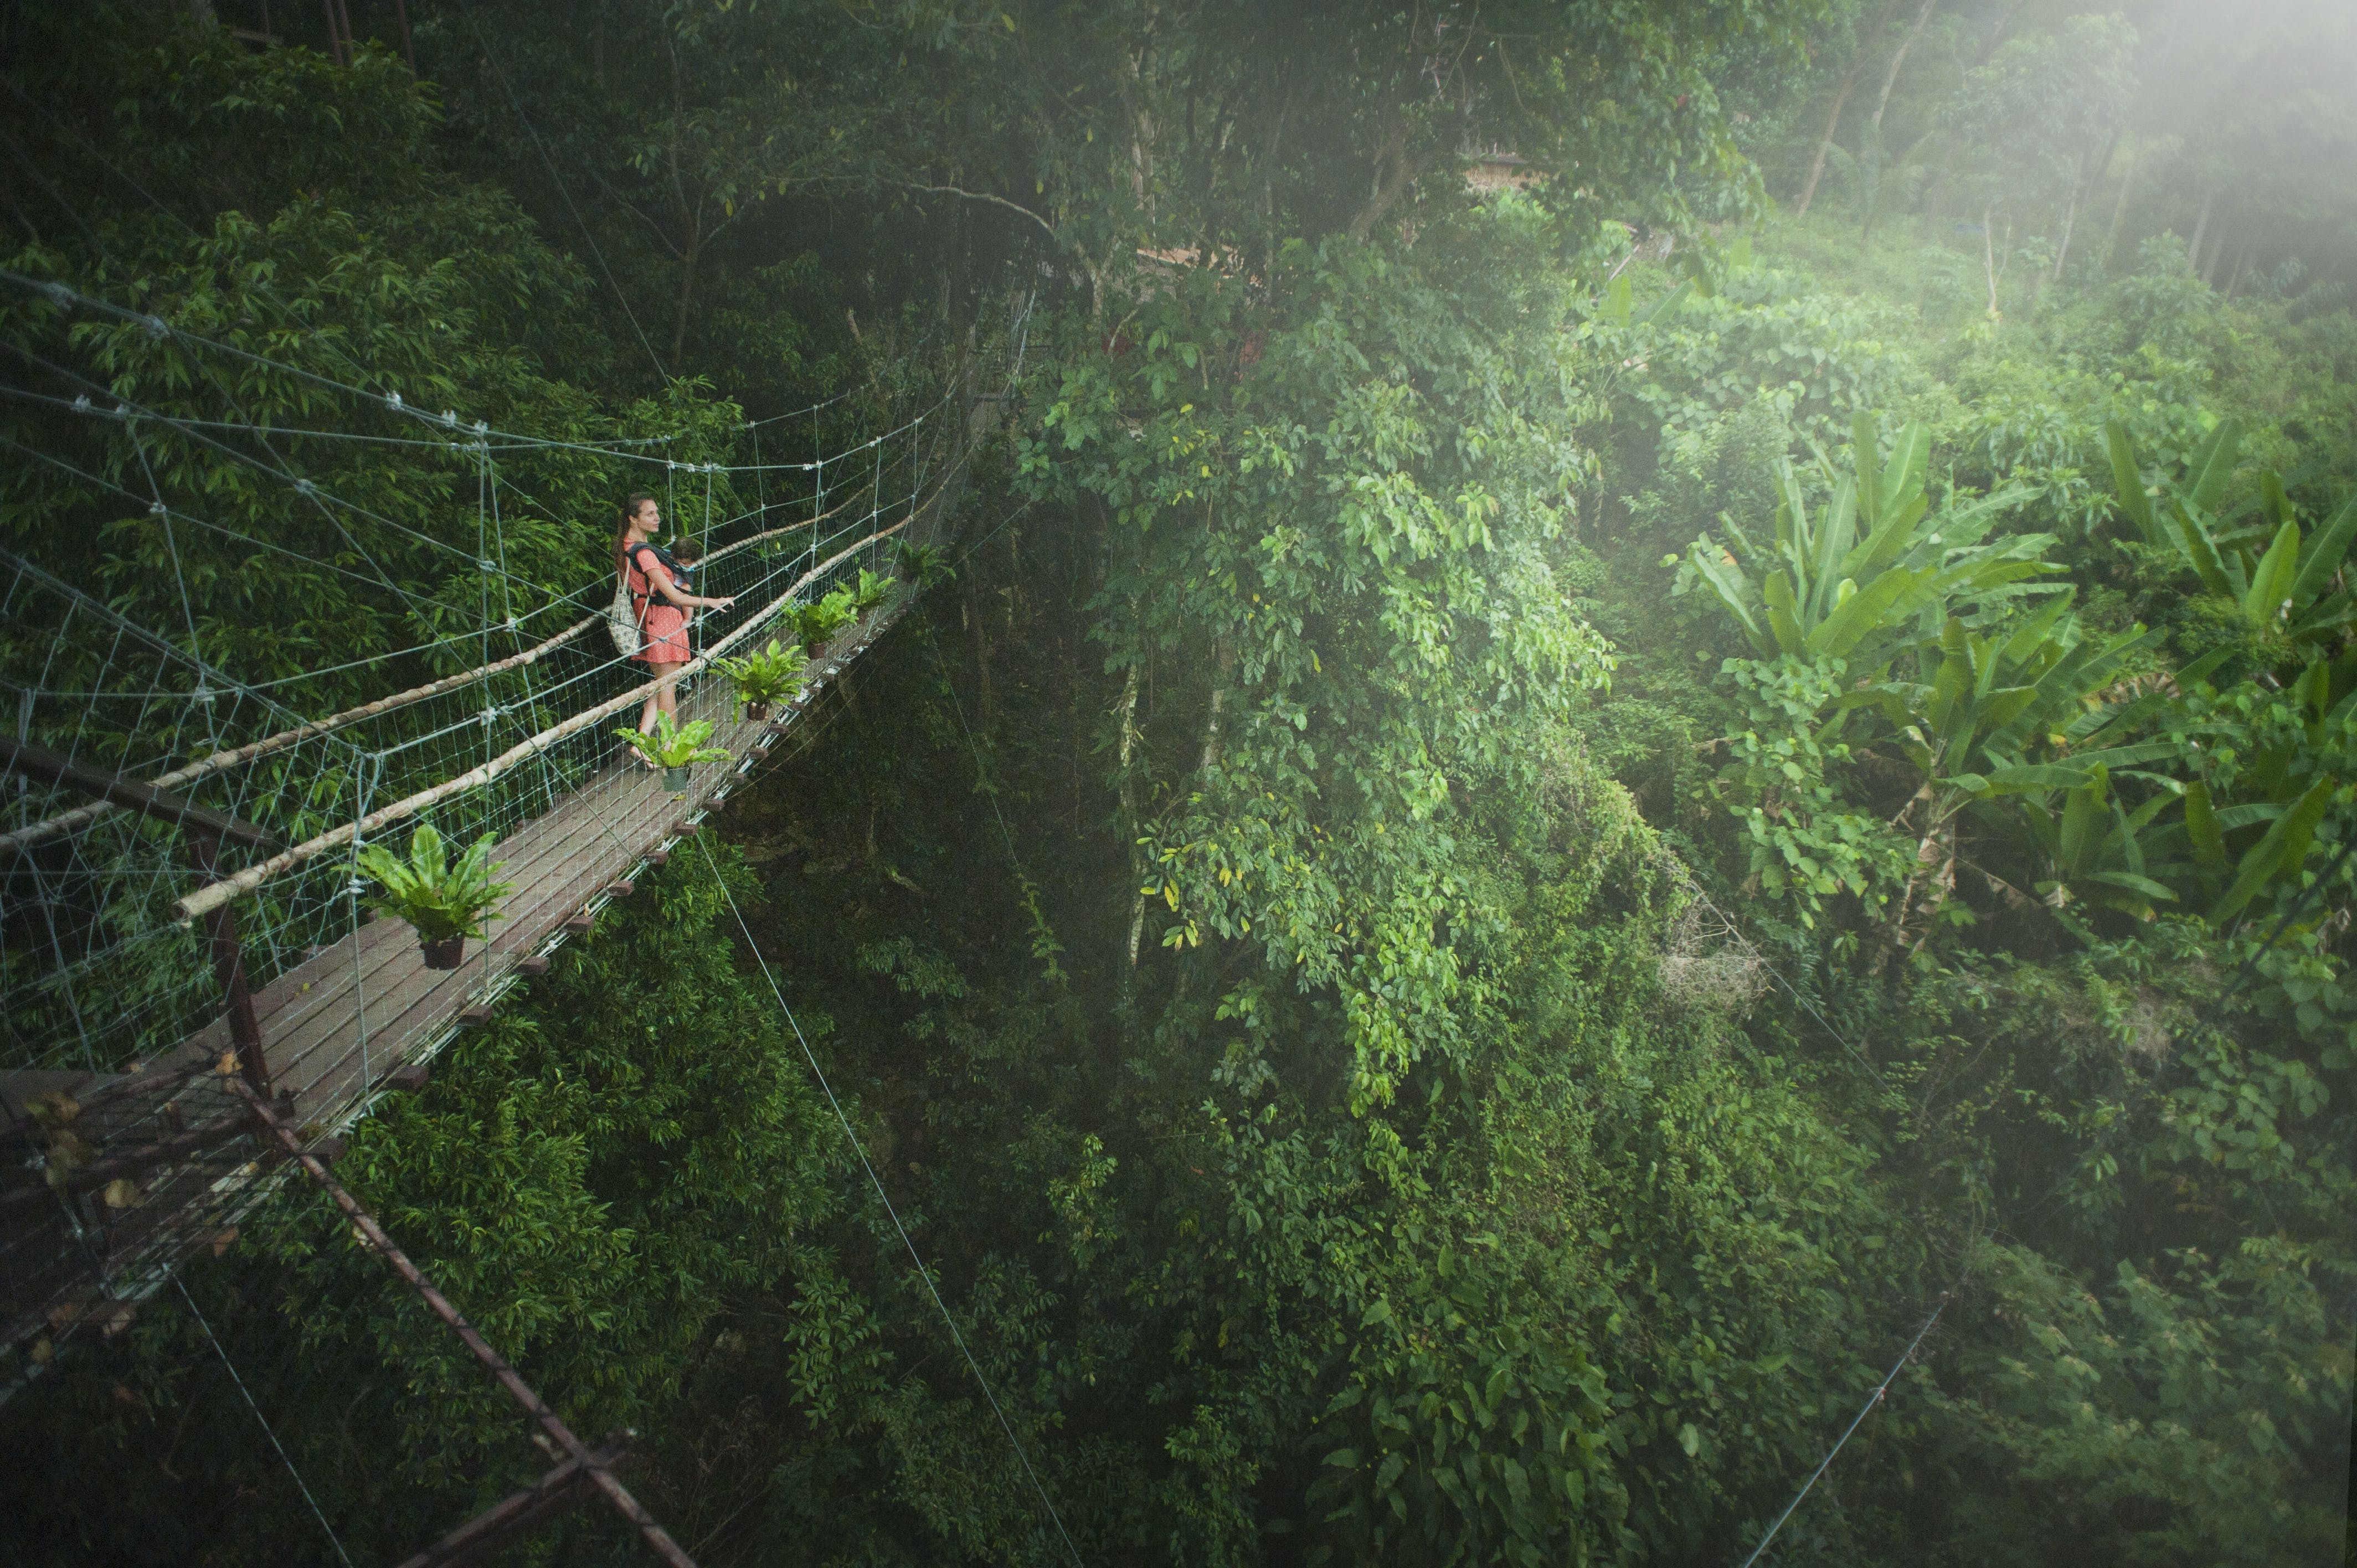 Girl Wearing Pink Dress Standing on Bridge Above Trees